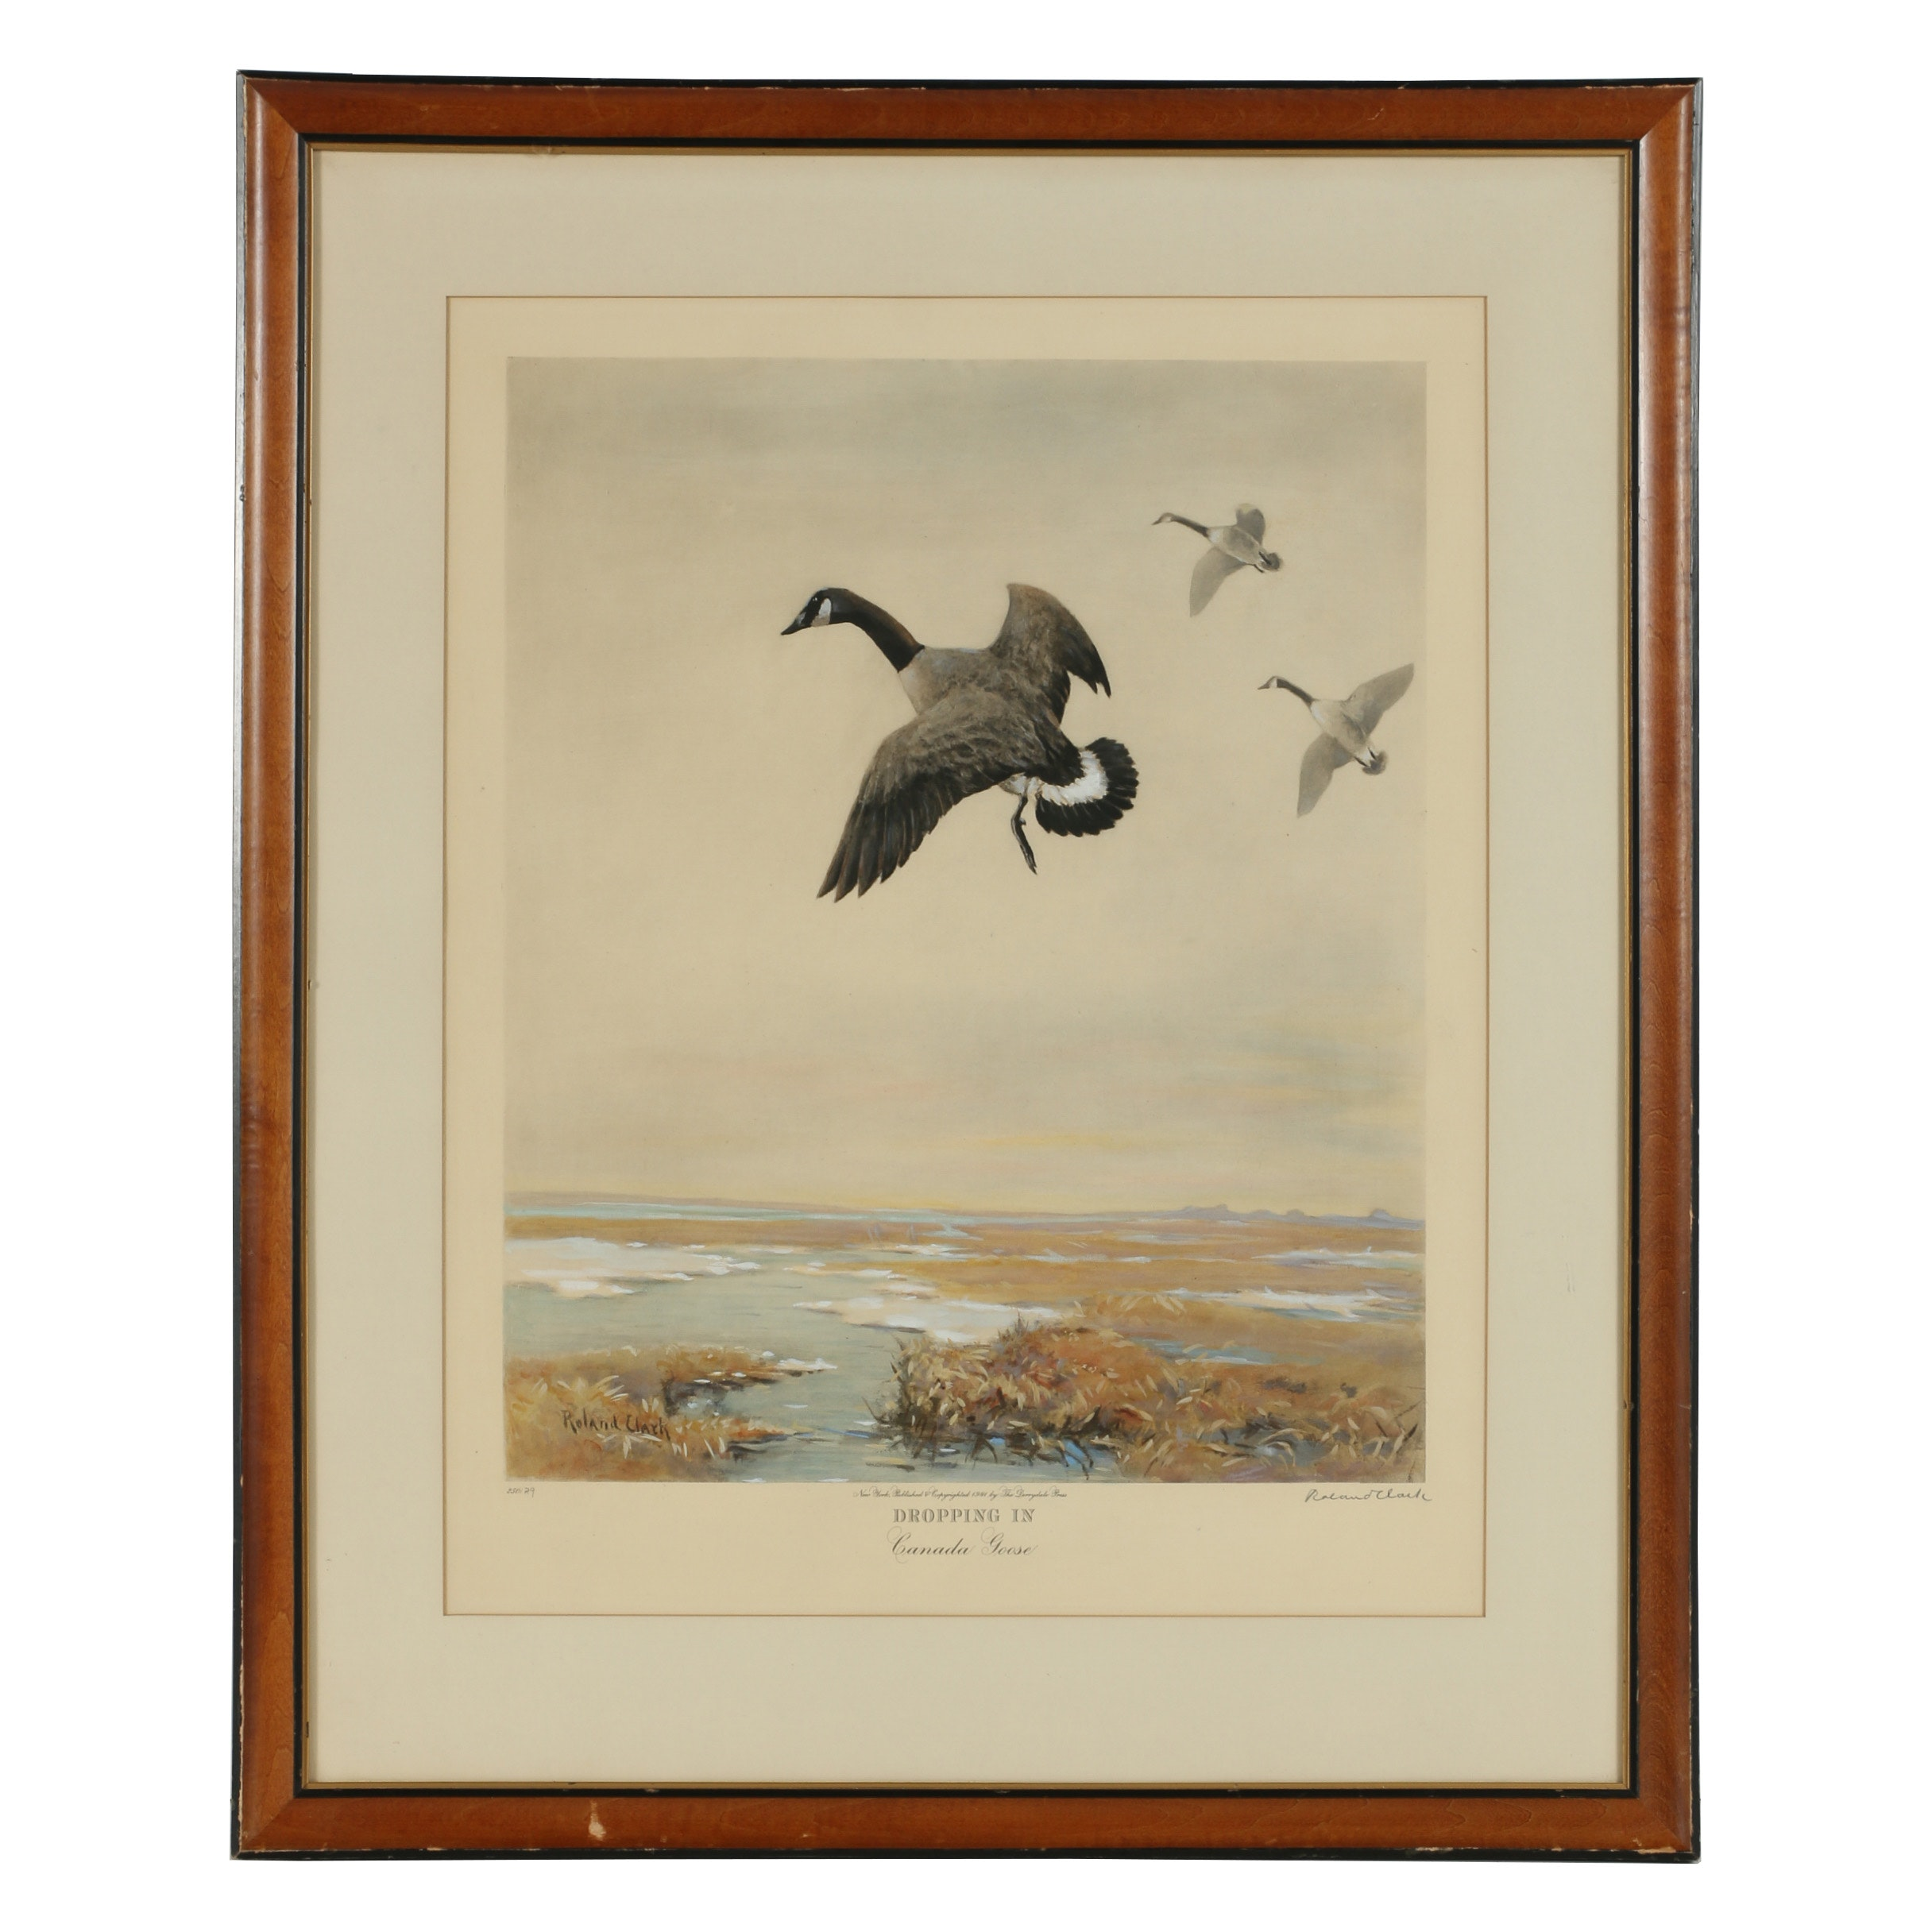 """Roland Clark Hand-Painted Photogravure """"Dropping In - Canada Goose"""""""